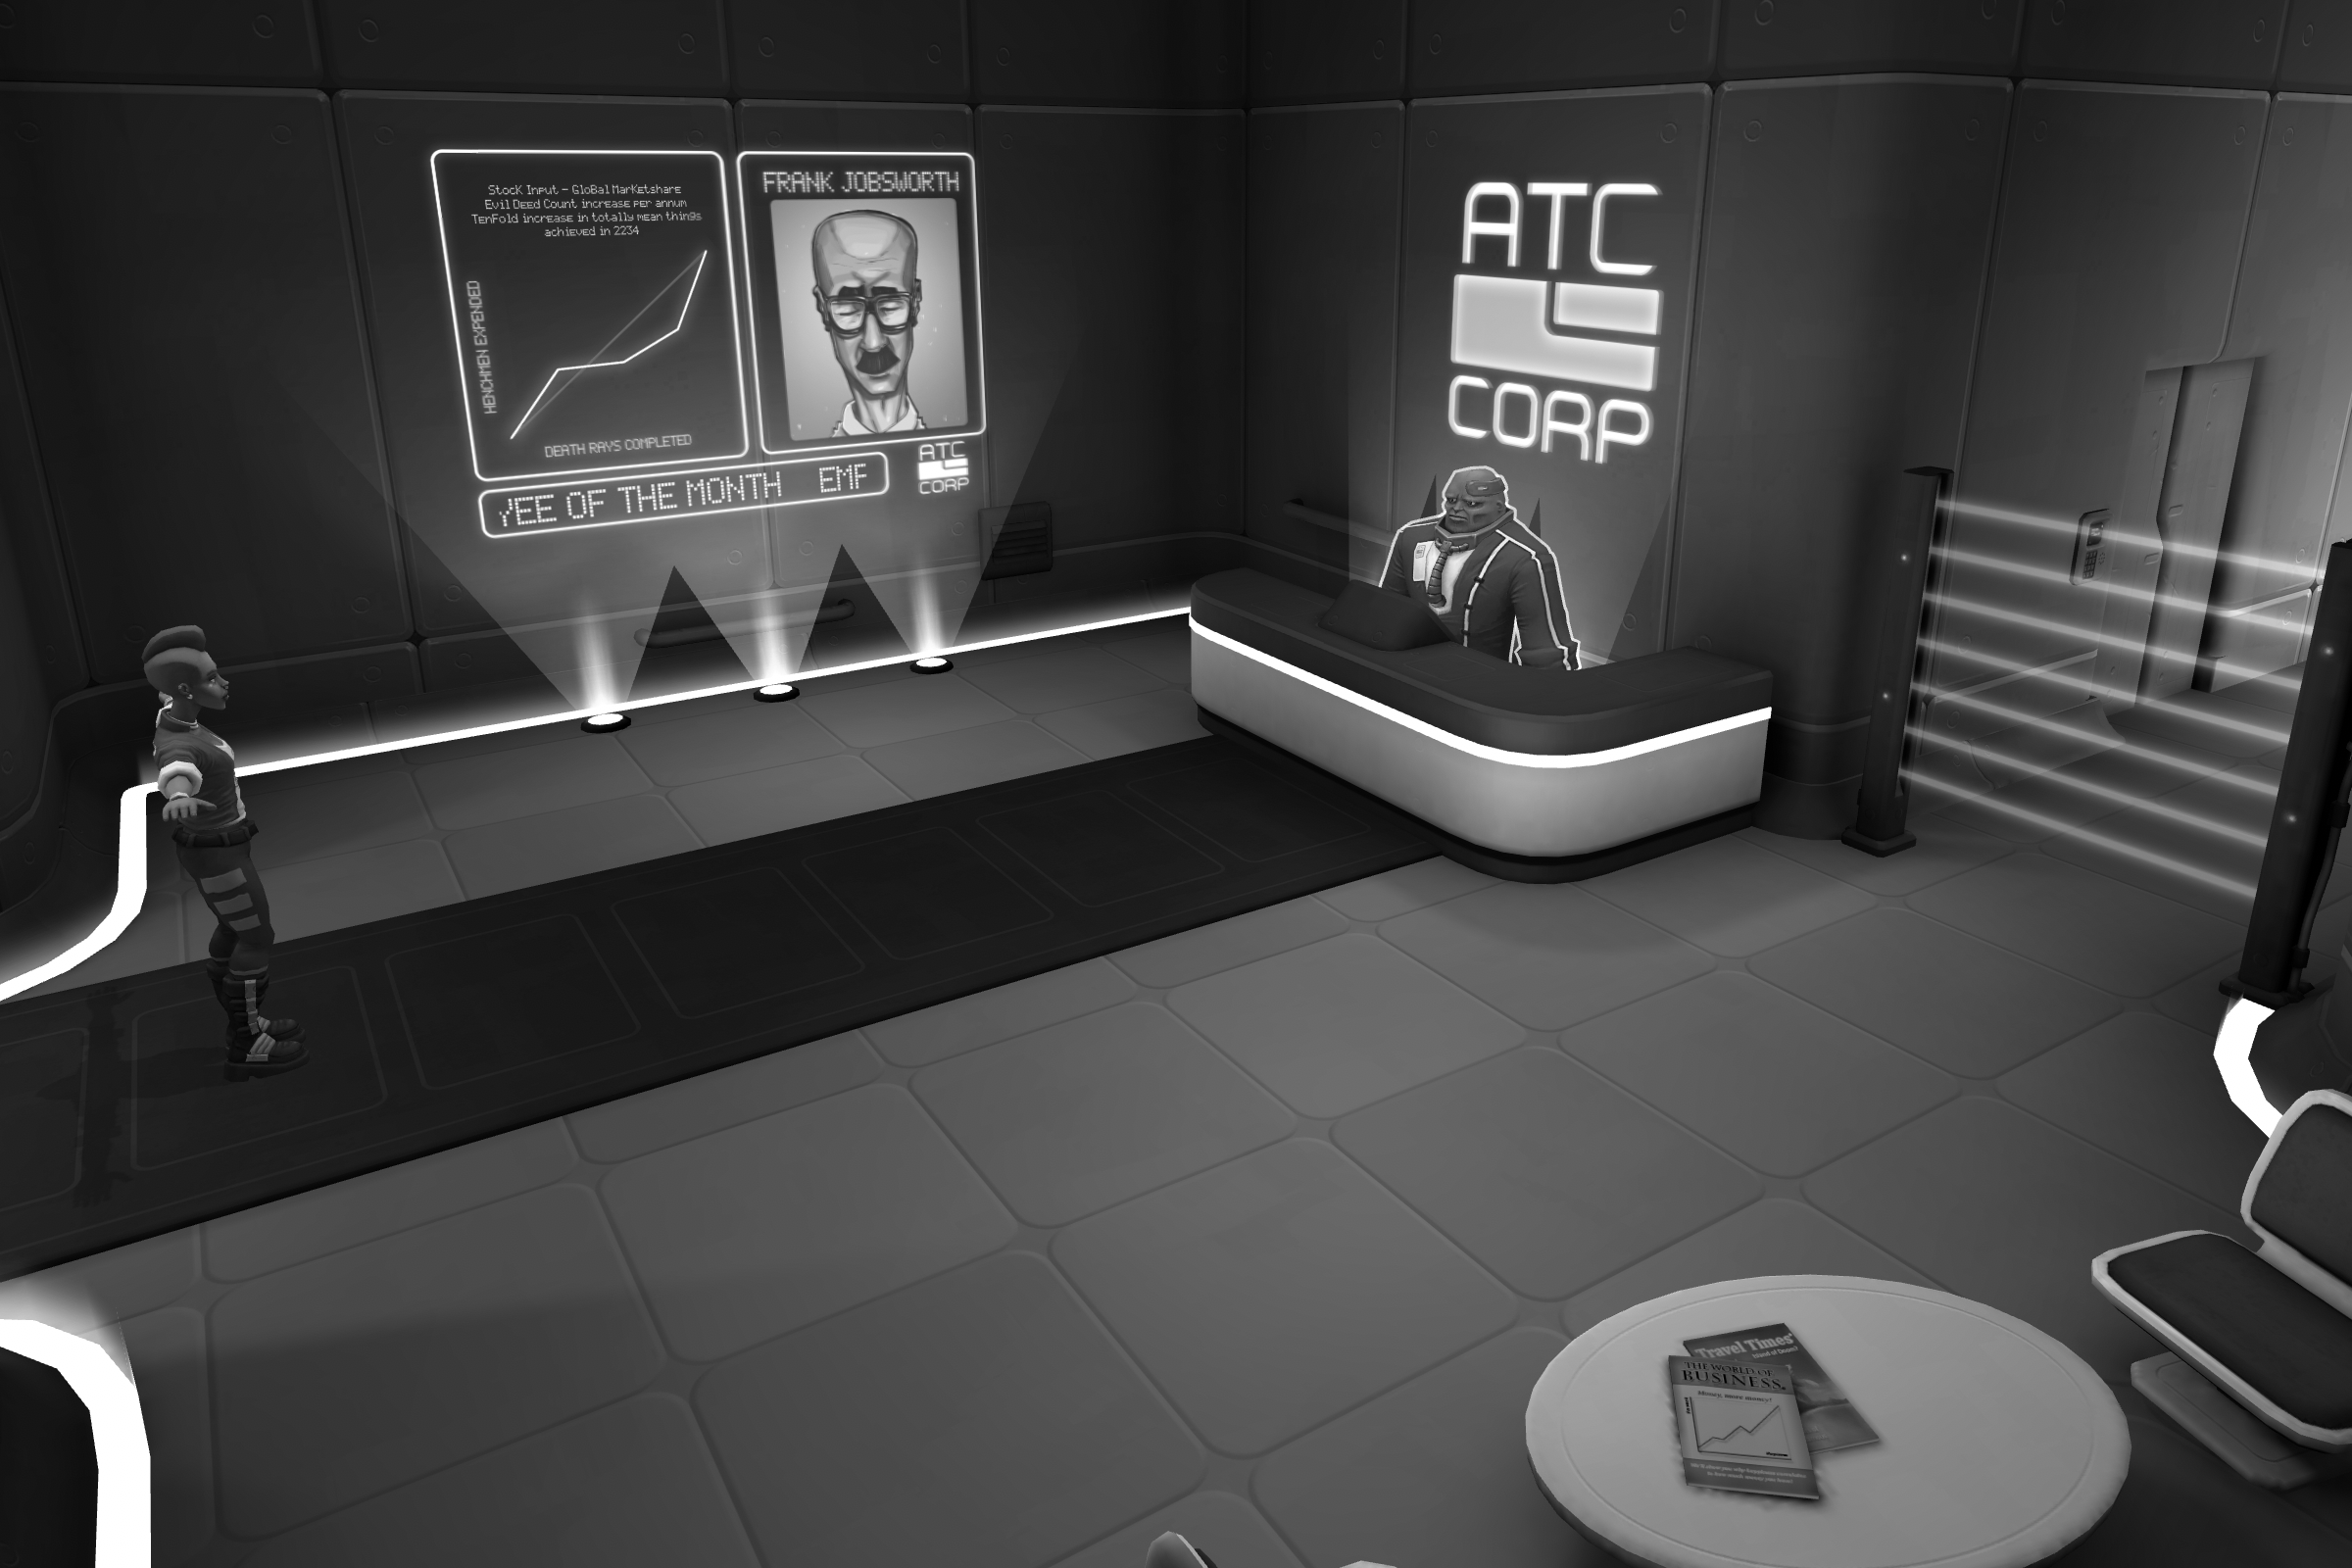 Grayscale-filtered screenshot of a scene from the Adventure Sample Game project